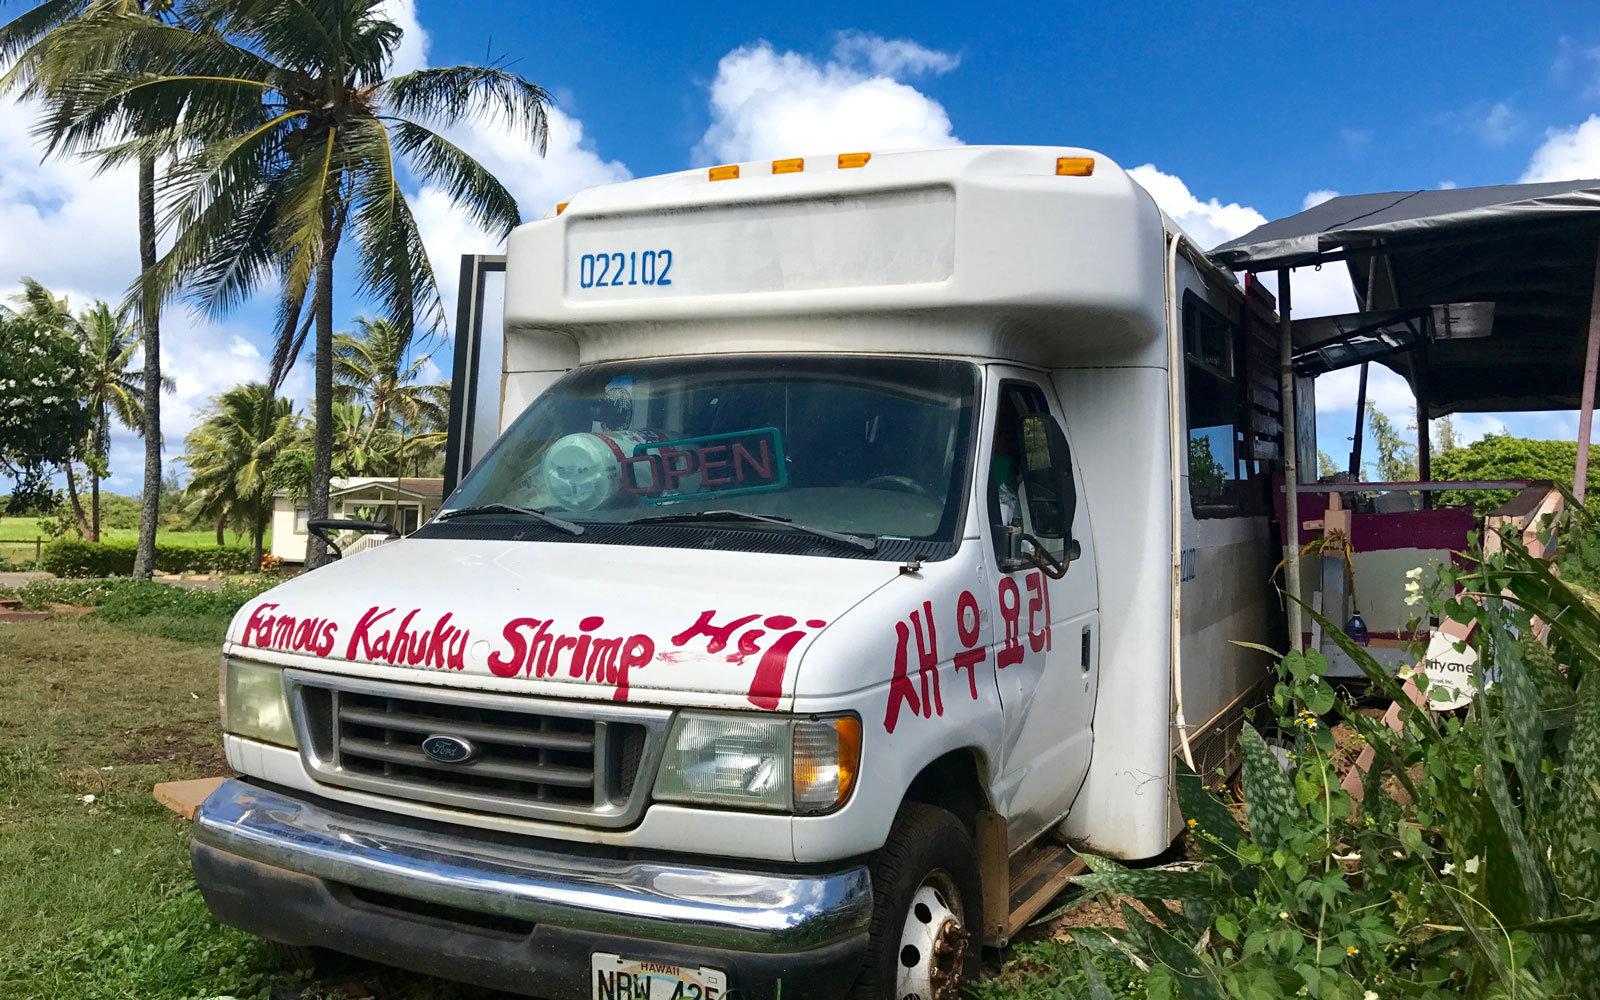 Kahuku Shrimp Trucks